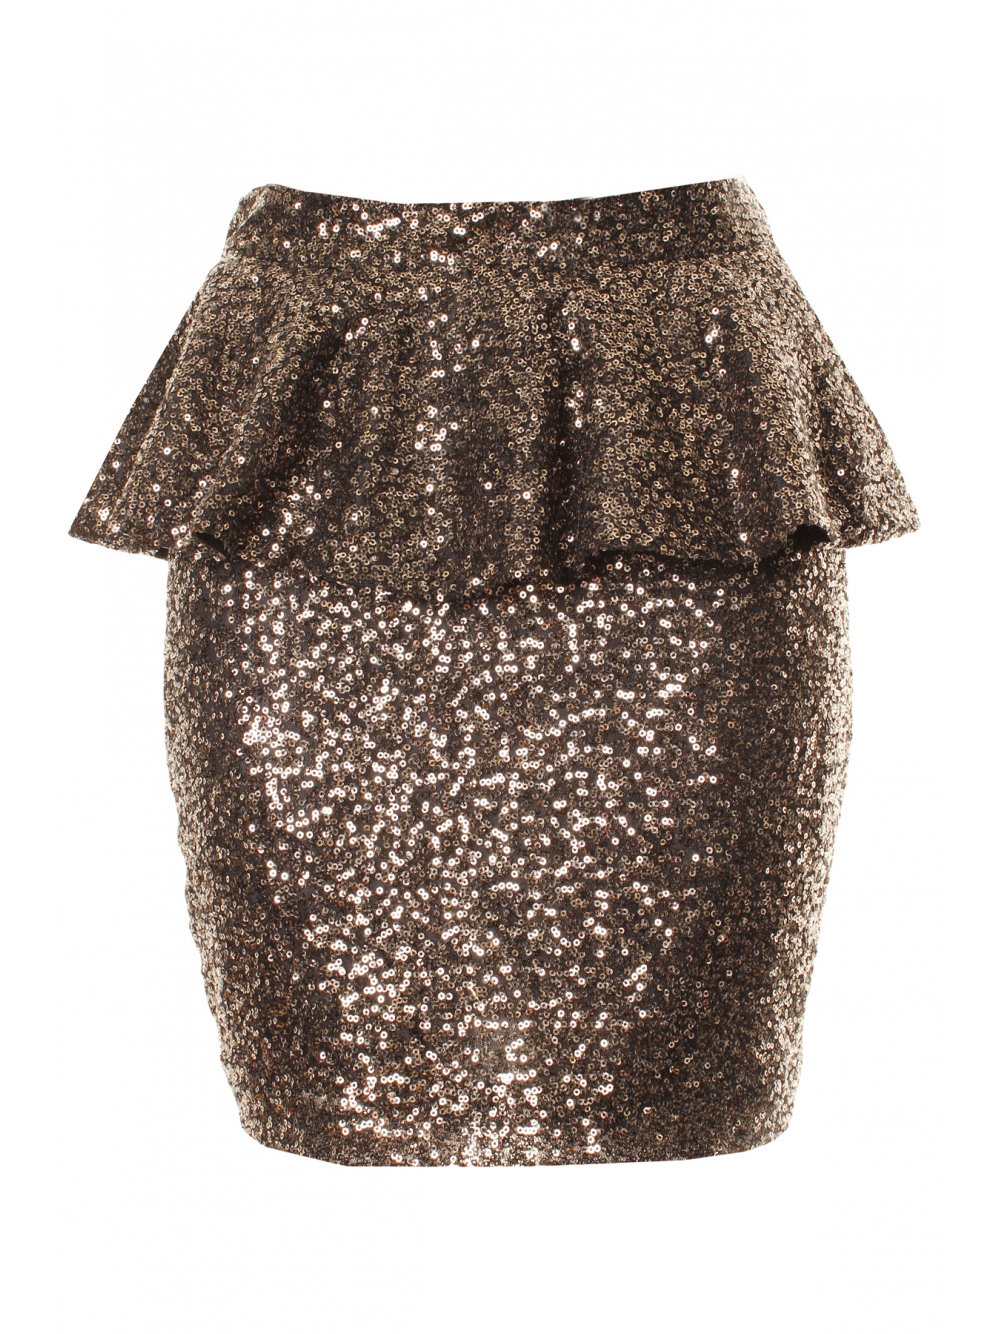 Long And Mini Gold Sequin Skirt 2014 2015 Fashion Trends